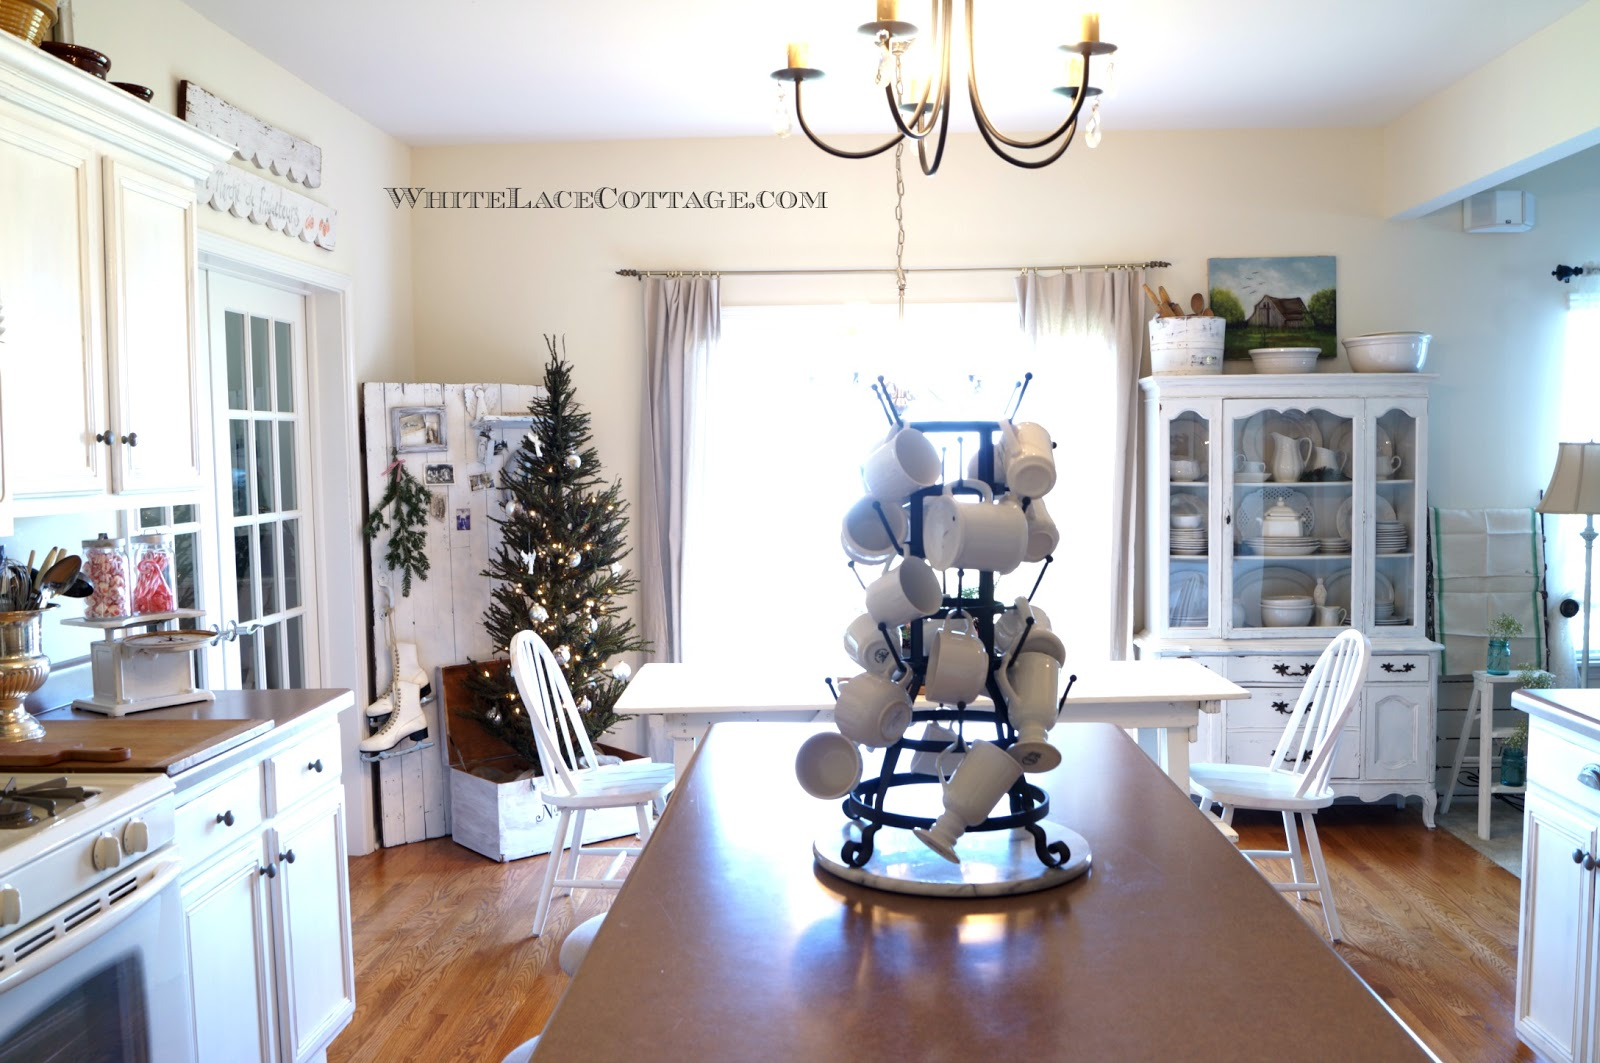 Kitchen Christmas Tree in a Trunk - White Lace Cottage